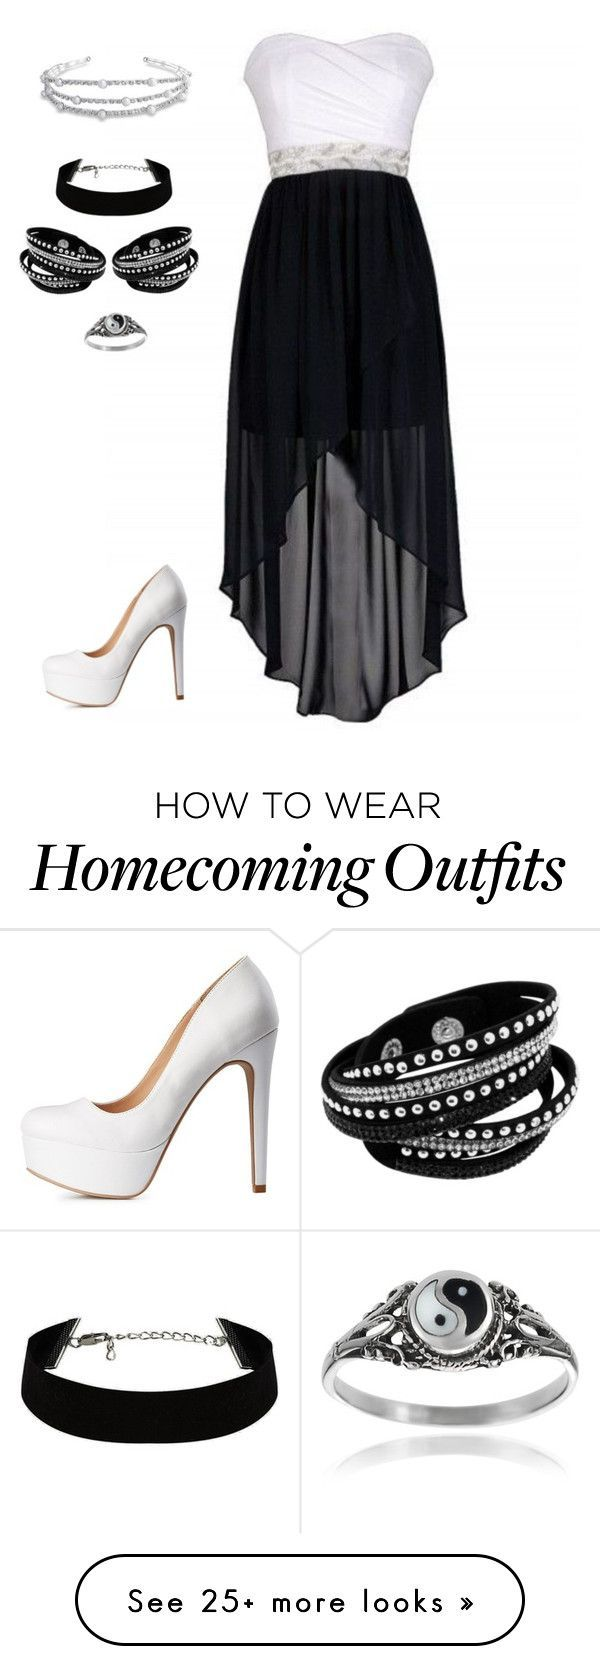 """Black & White"" by lucy-wolf on Polyvore featuring Journee Collection, Charlotte Russe, Bling Jewelry, women's clothing, women, female, woman, misses and juniors"